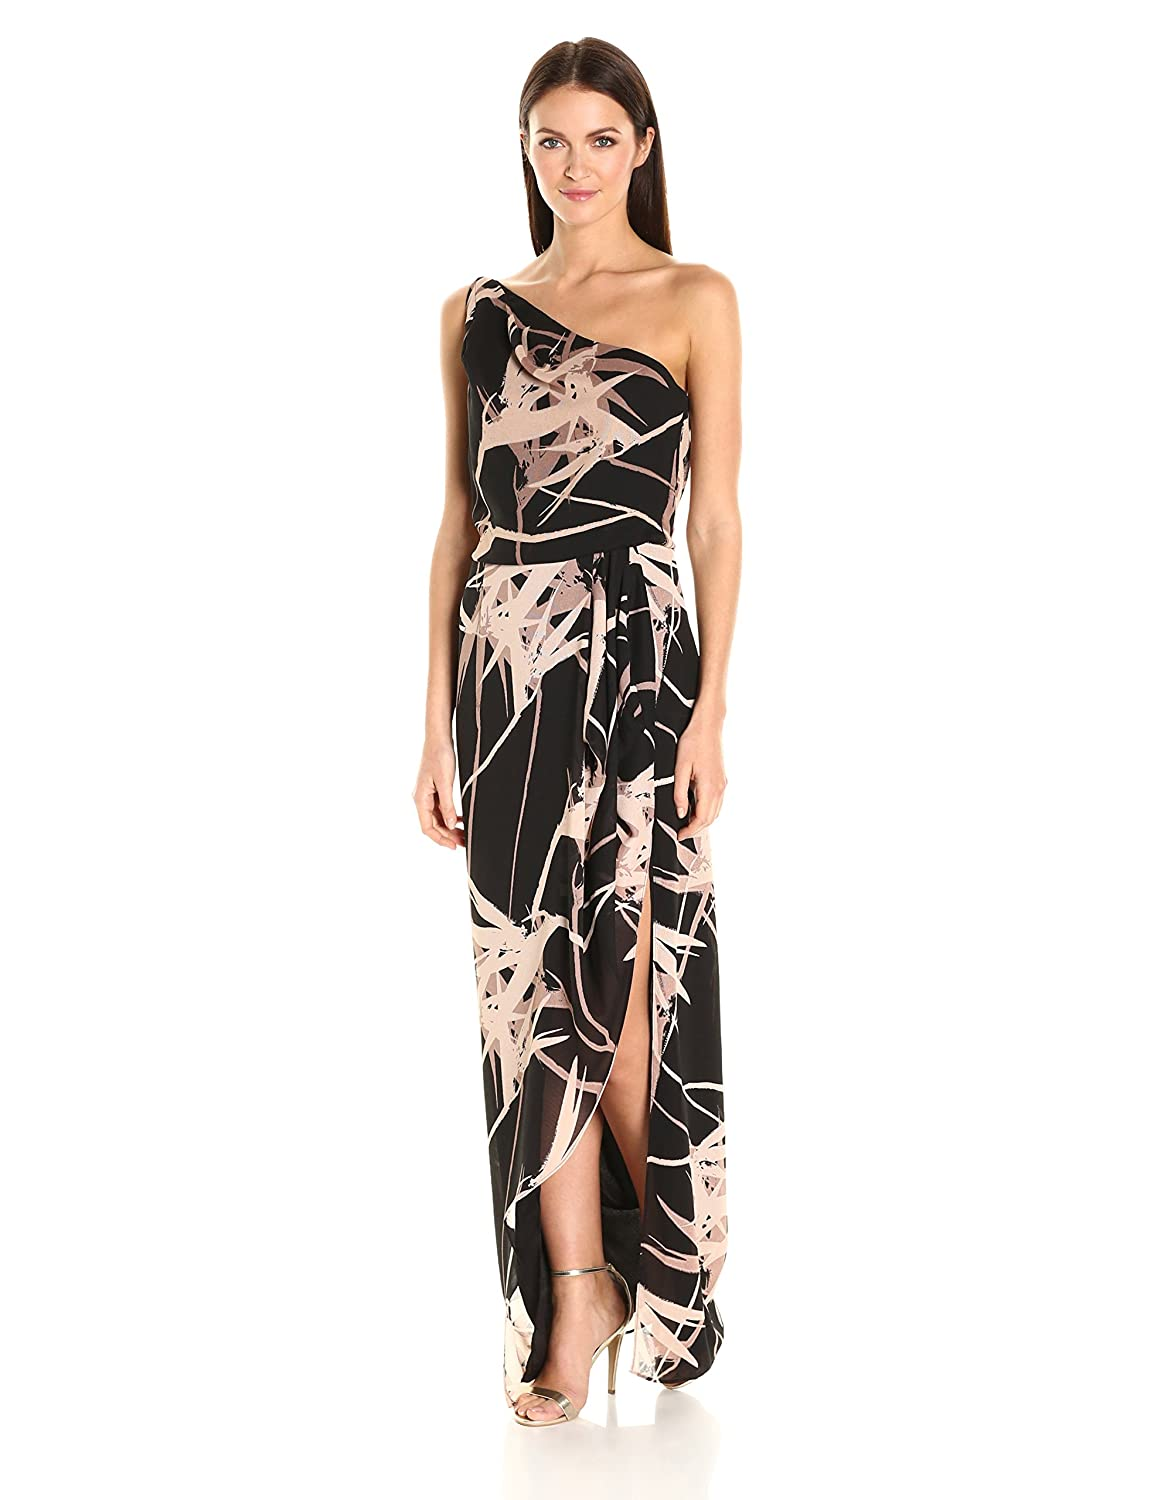 5c83e331135 Amazon.com  Halston Heritage Women s One Shoulder Printed Gown Flounce Drape   Clothing